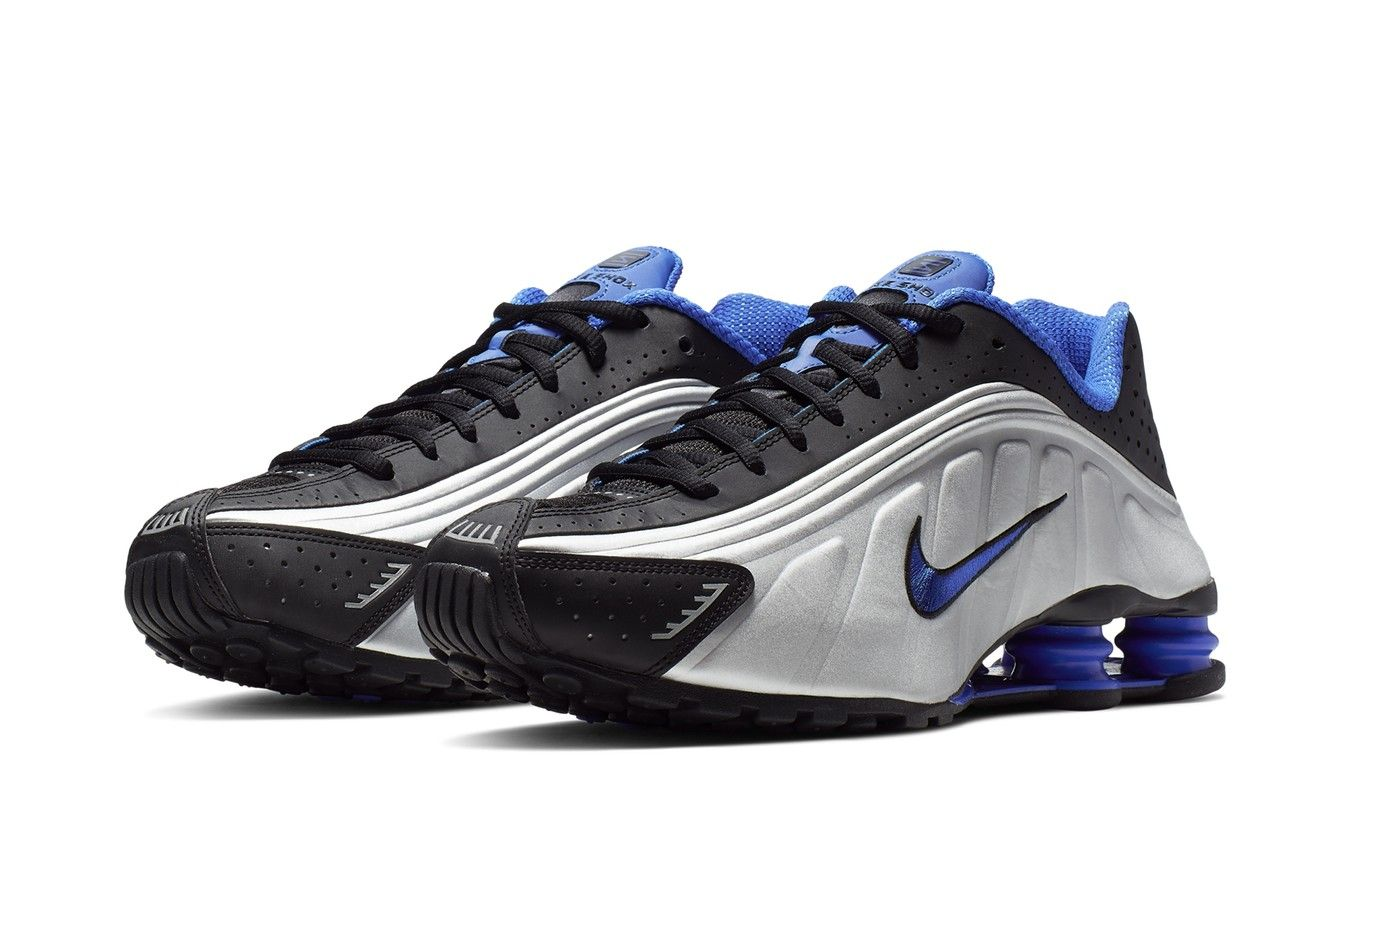 Nike Releases the Shox R4 in Racer Blue & Metallic Silver ...